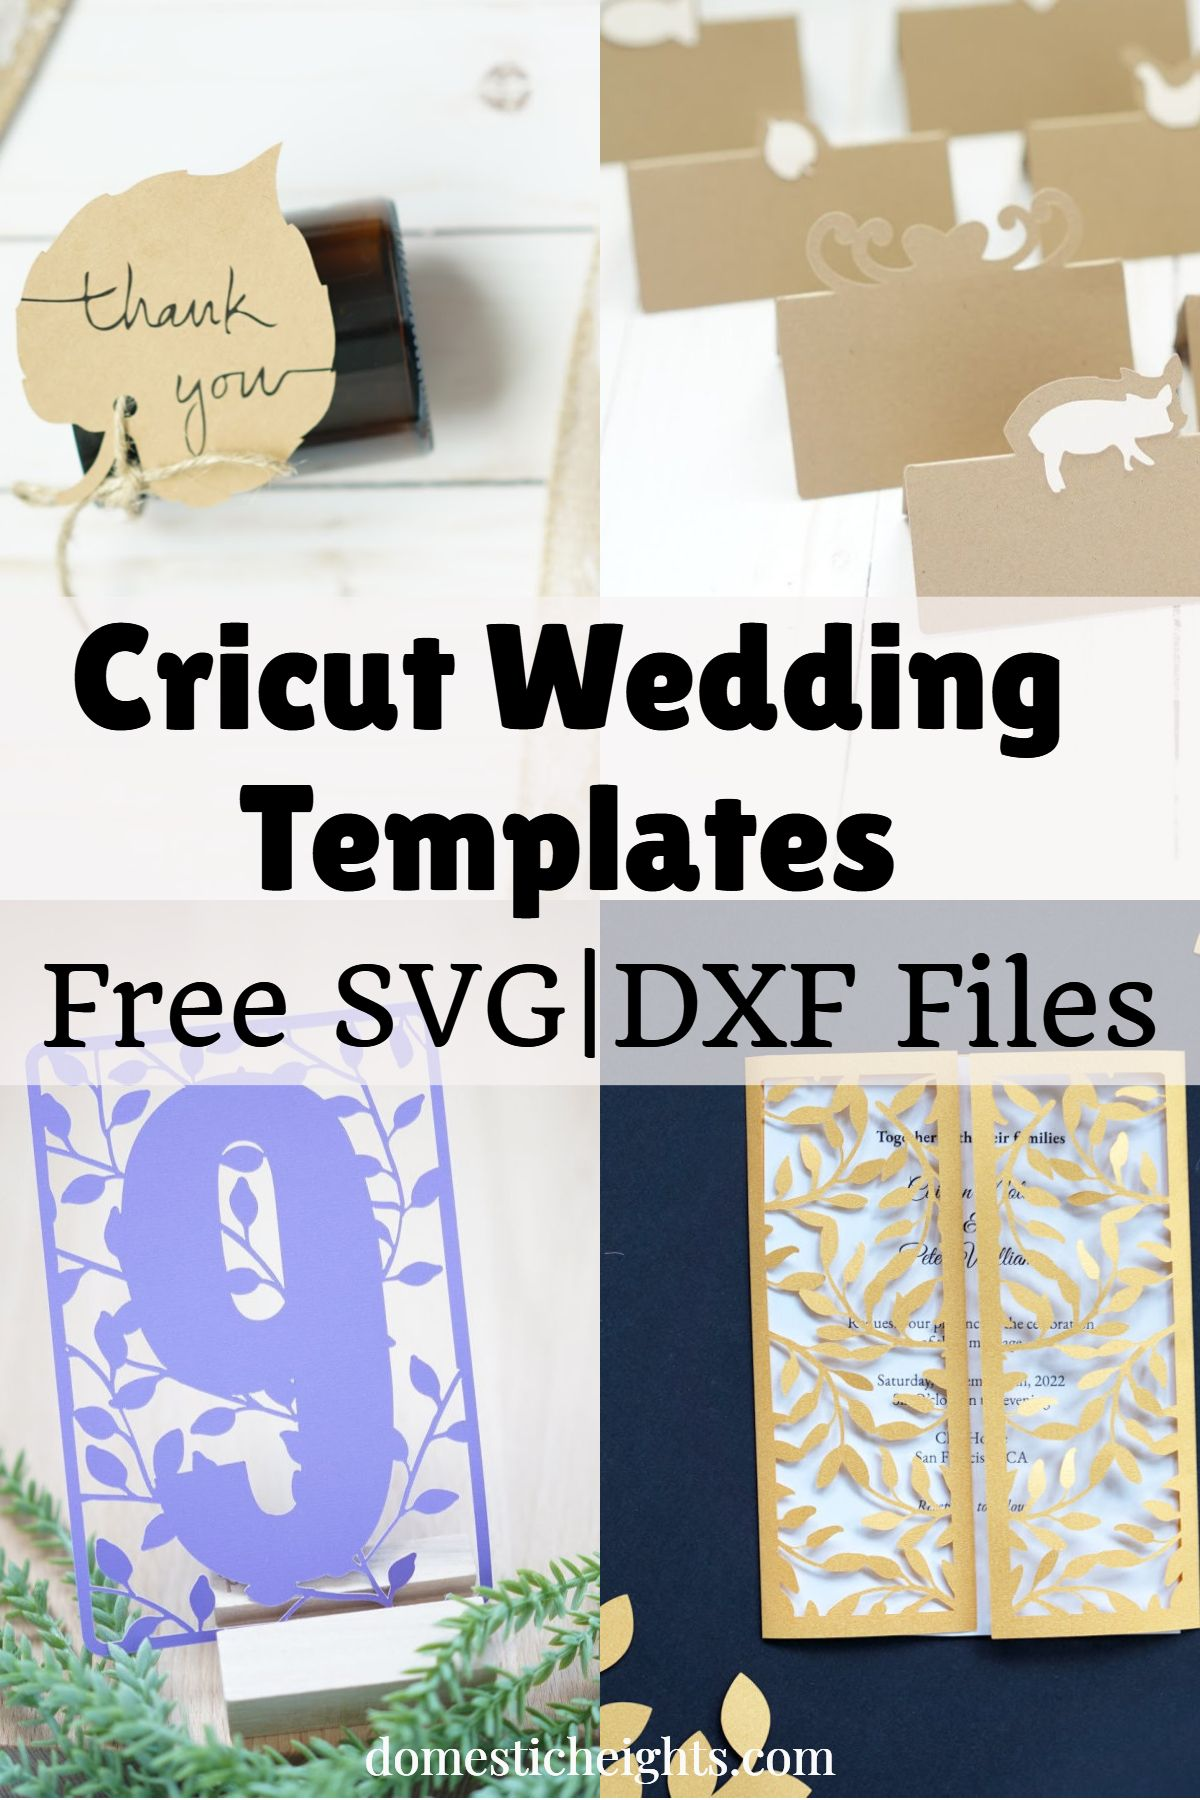 Cricut Wedding Ideas Domestic Heights Cricut Wedding Invitations Wedding Card Diy Cricut Invitations